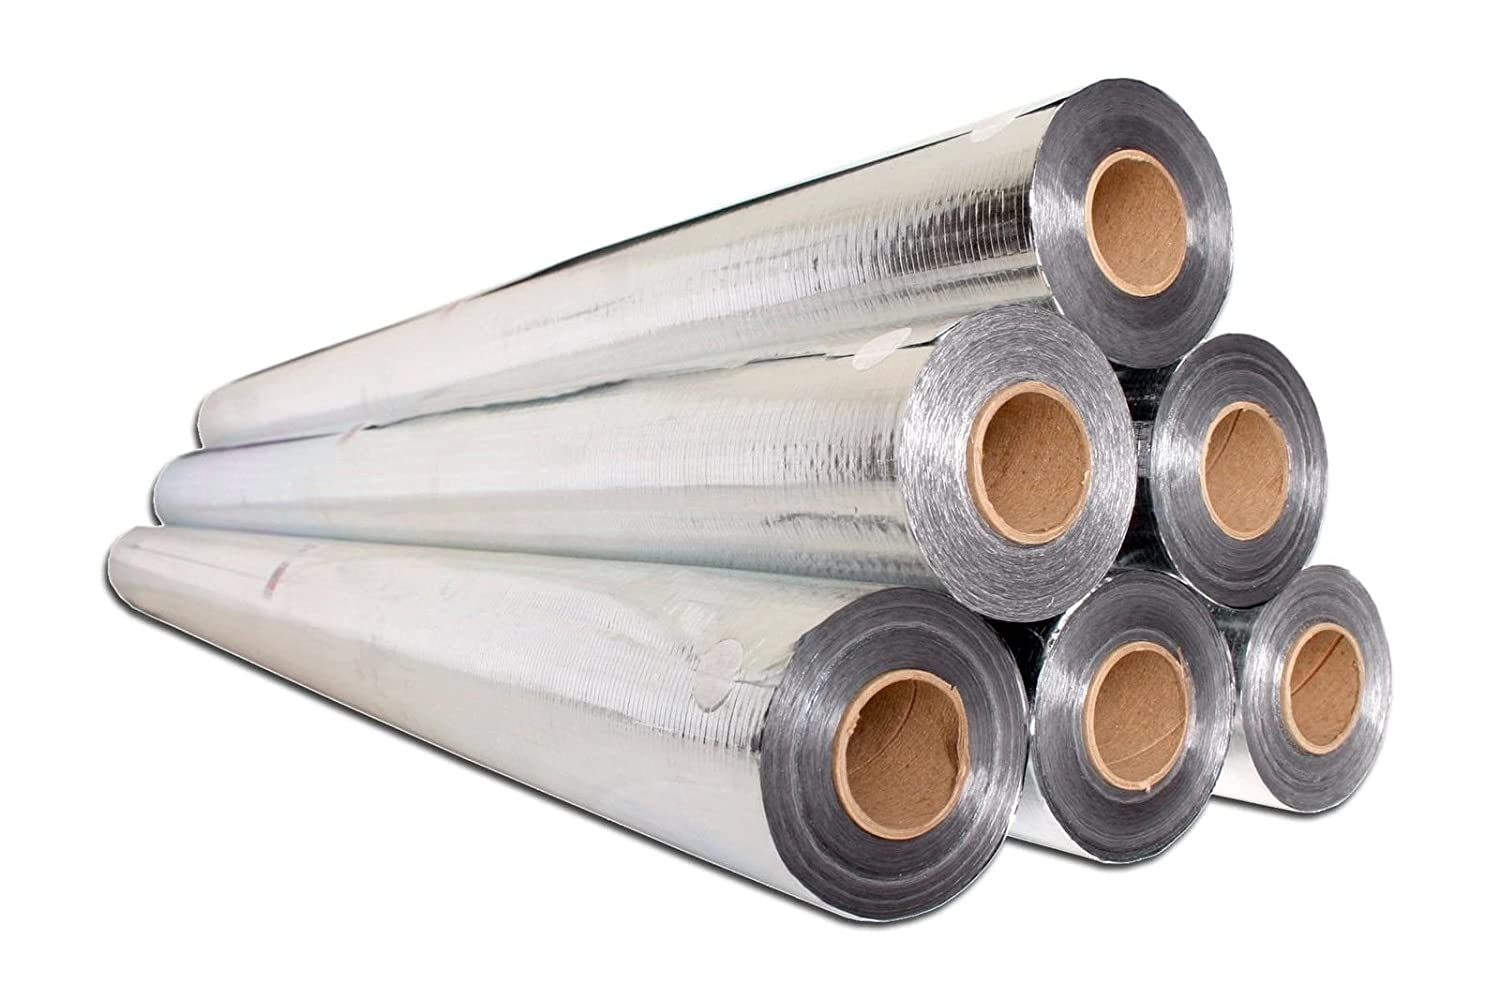 SuperShield Industrial Heavy Duty, No Tear, Double Sided, Perforated, Radiant Barrier (1,000 Sq Ft) Commercial Grade, Reflective Aluminum Foil Insulation for Attics, Greenhouses, & House Wrap!